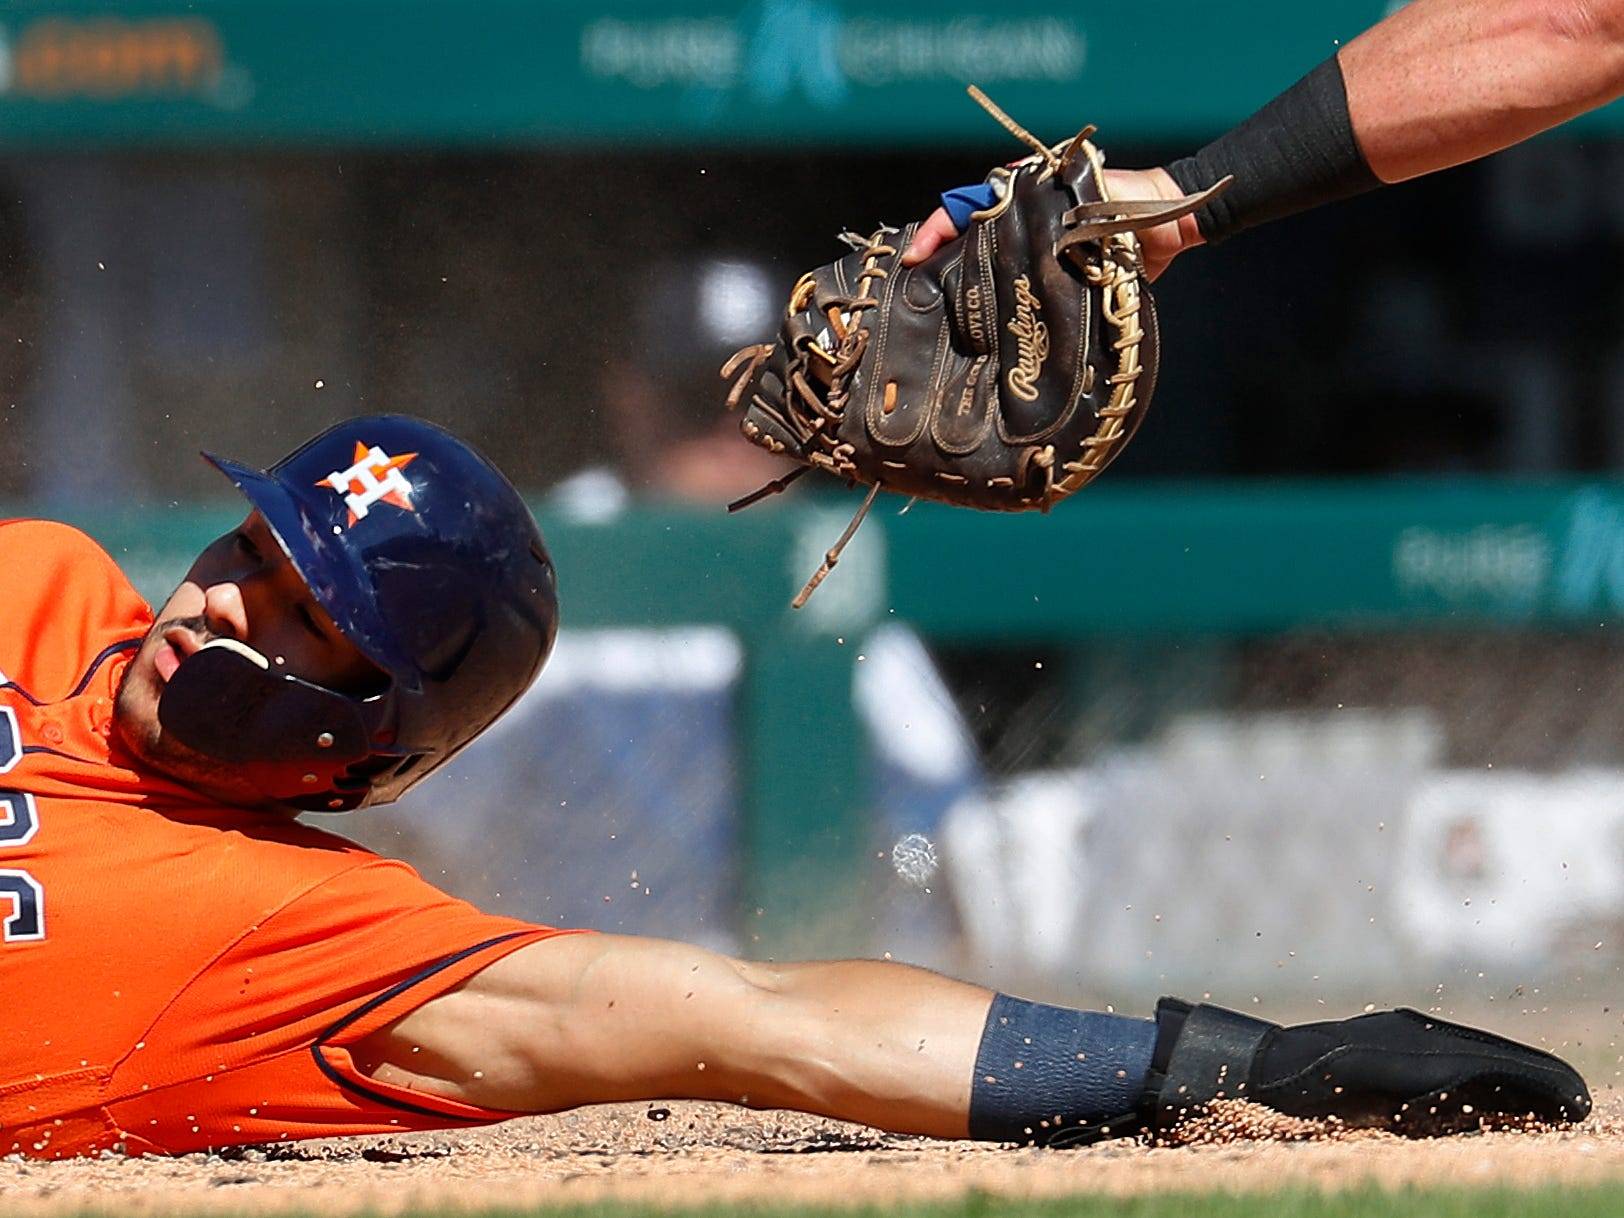 Houston Astros' Carlos Correa (1) slides safely into home plate as Detroit Tigers catcher James McCann's tag is late in the fifth inning.